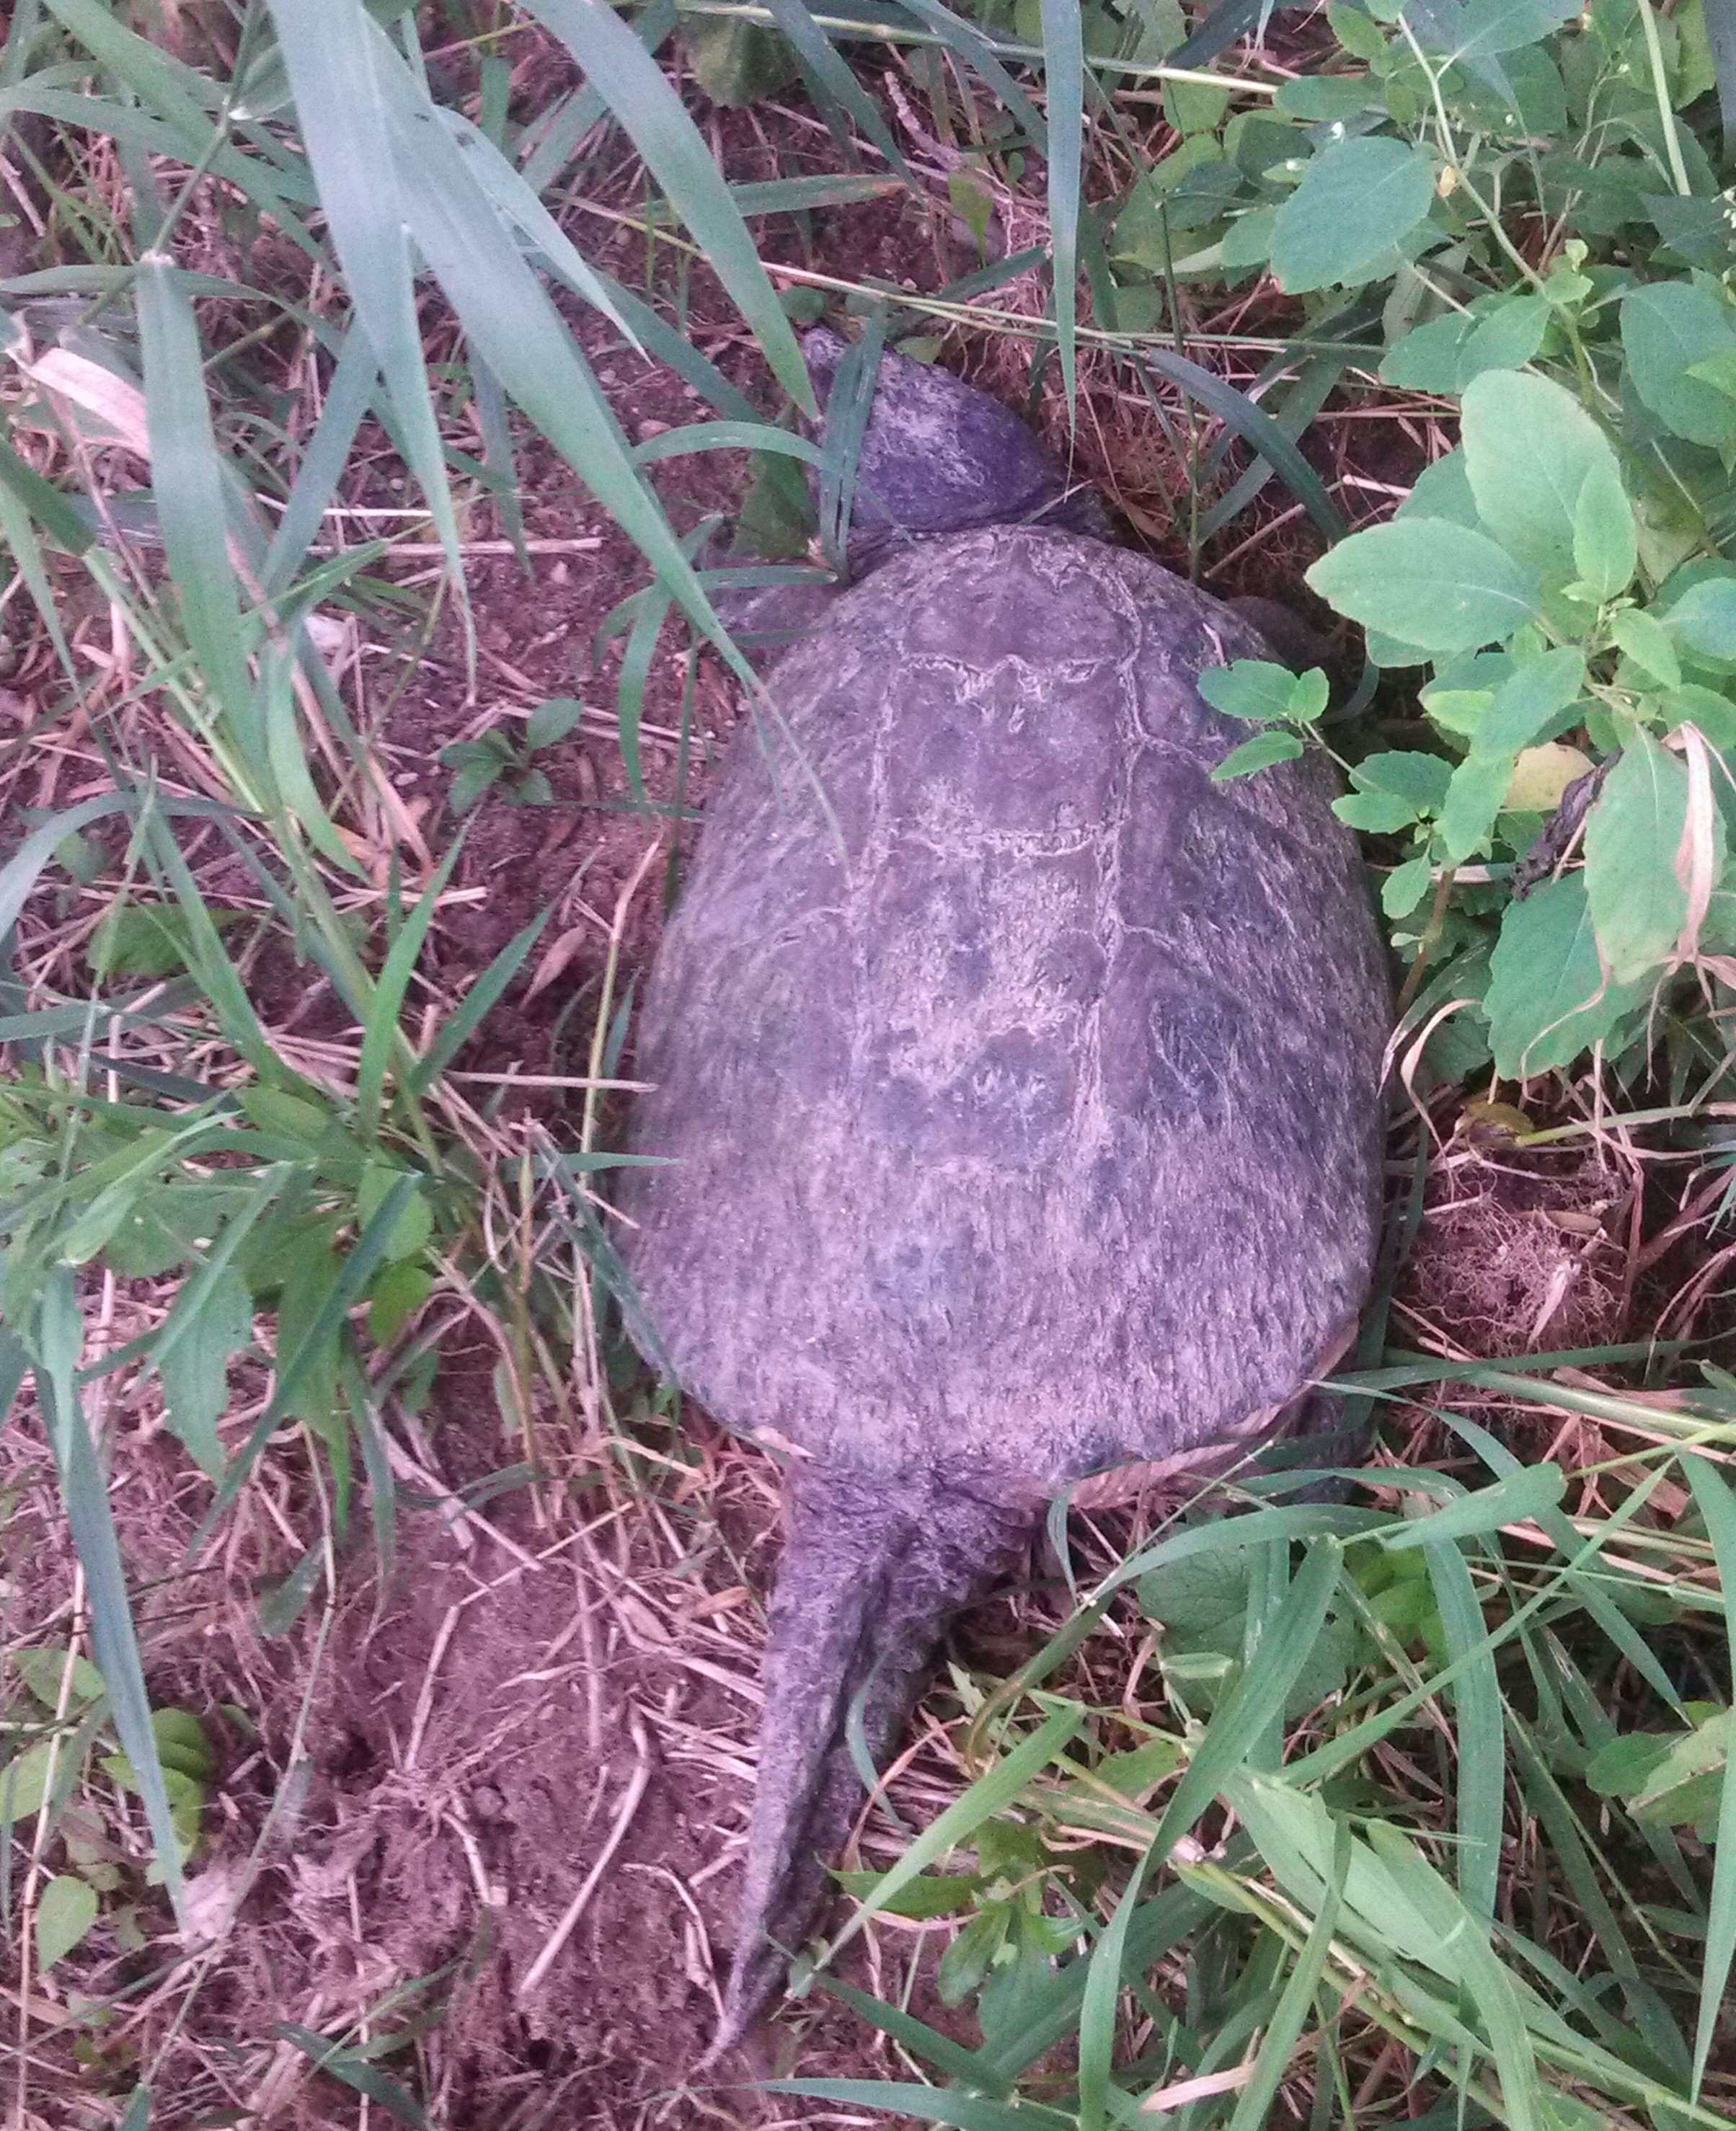 Large snapping turtle surrounded by weeds.